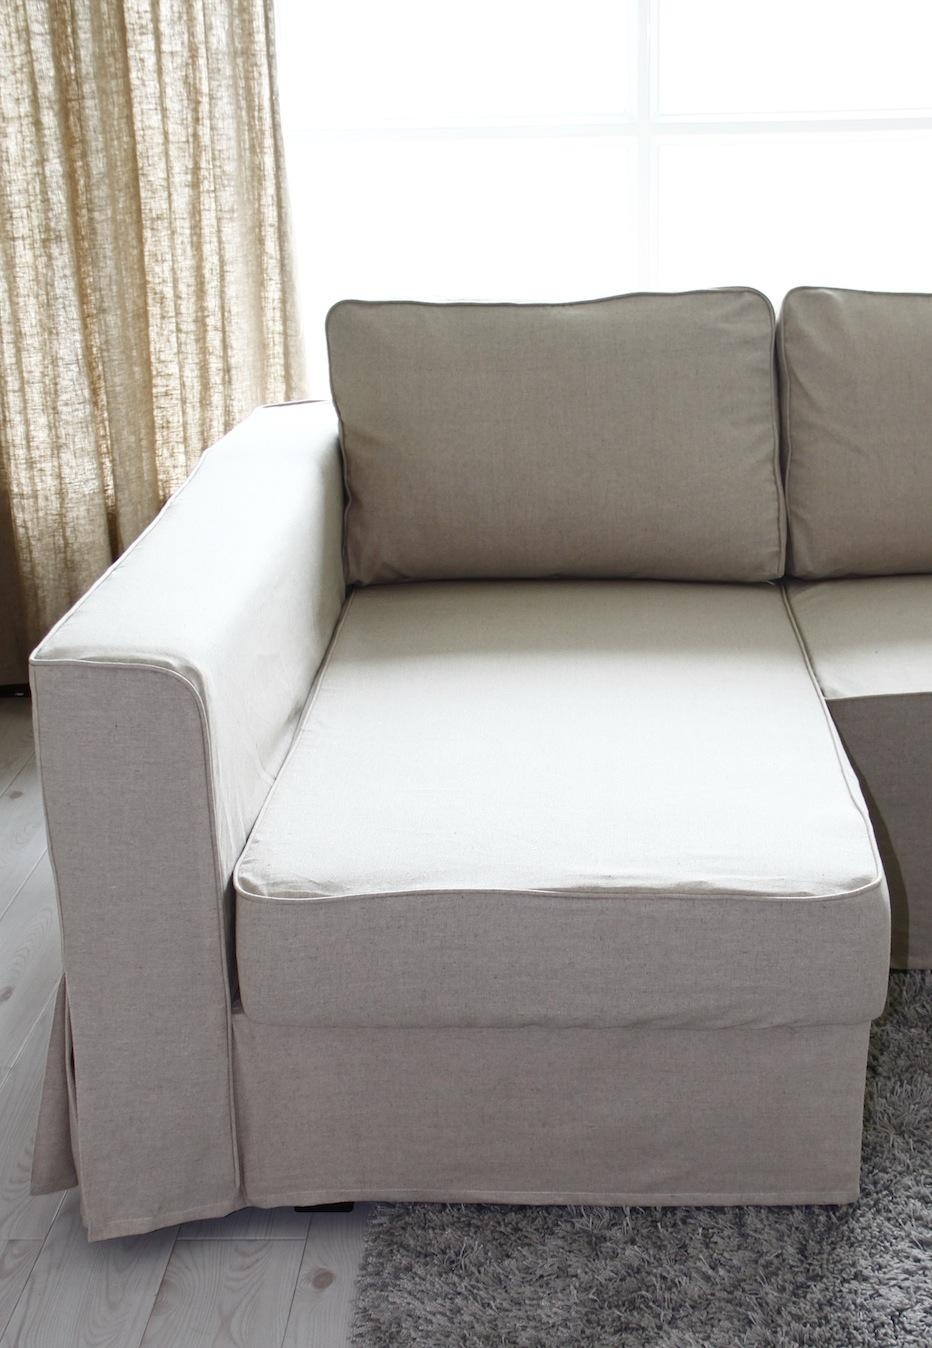 Couch Seat Cushion Covers | Cushions Decoration With Individual Couch Seat Cushion Covers (Image 3 of 20)